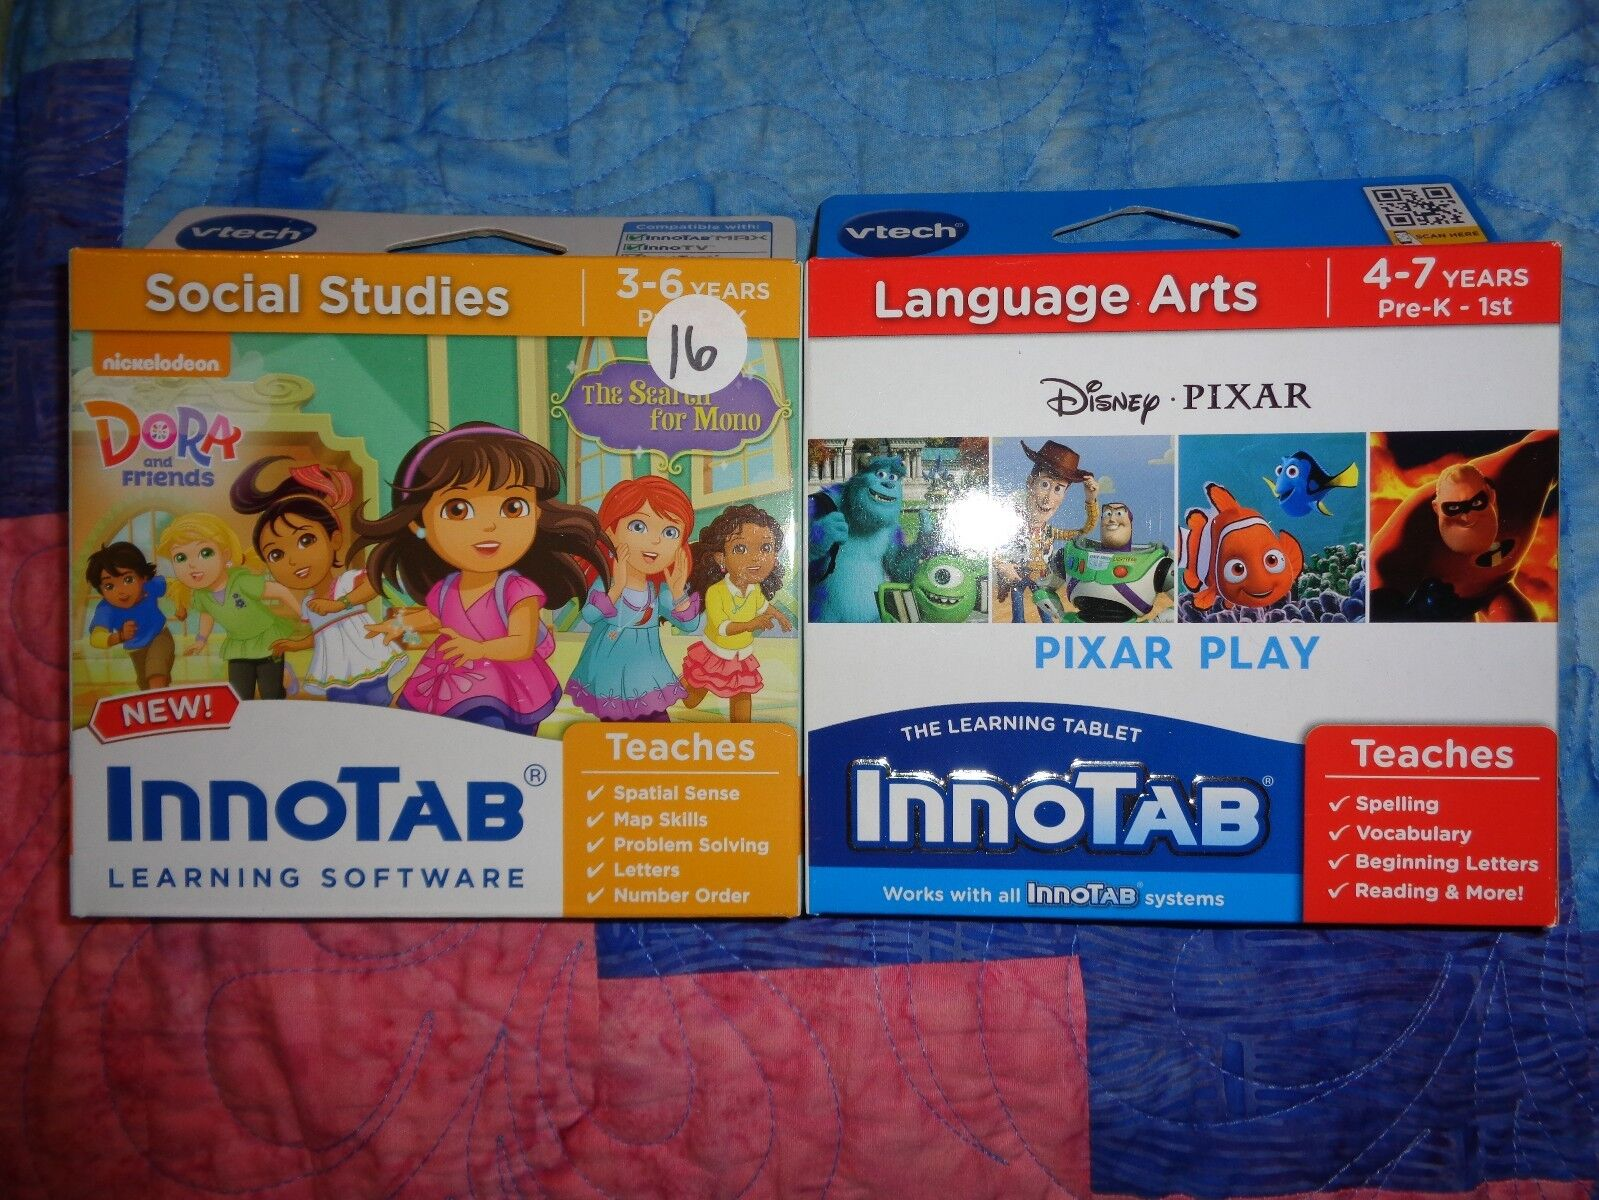 Lot 2 VTECH INNOTAB GAME CARTRIDGES Dora and Friends Search for Mono Pixar Play